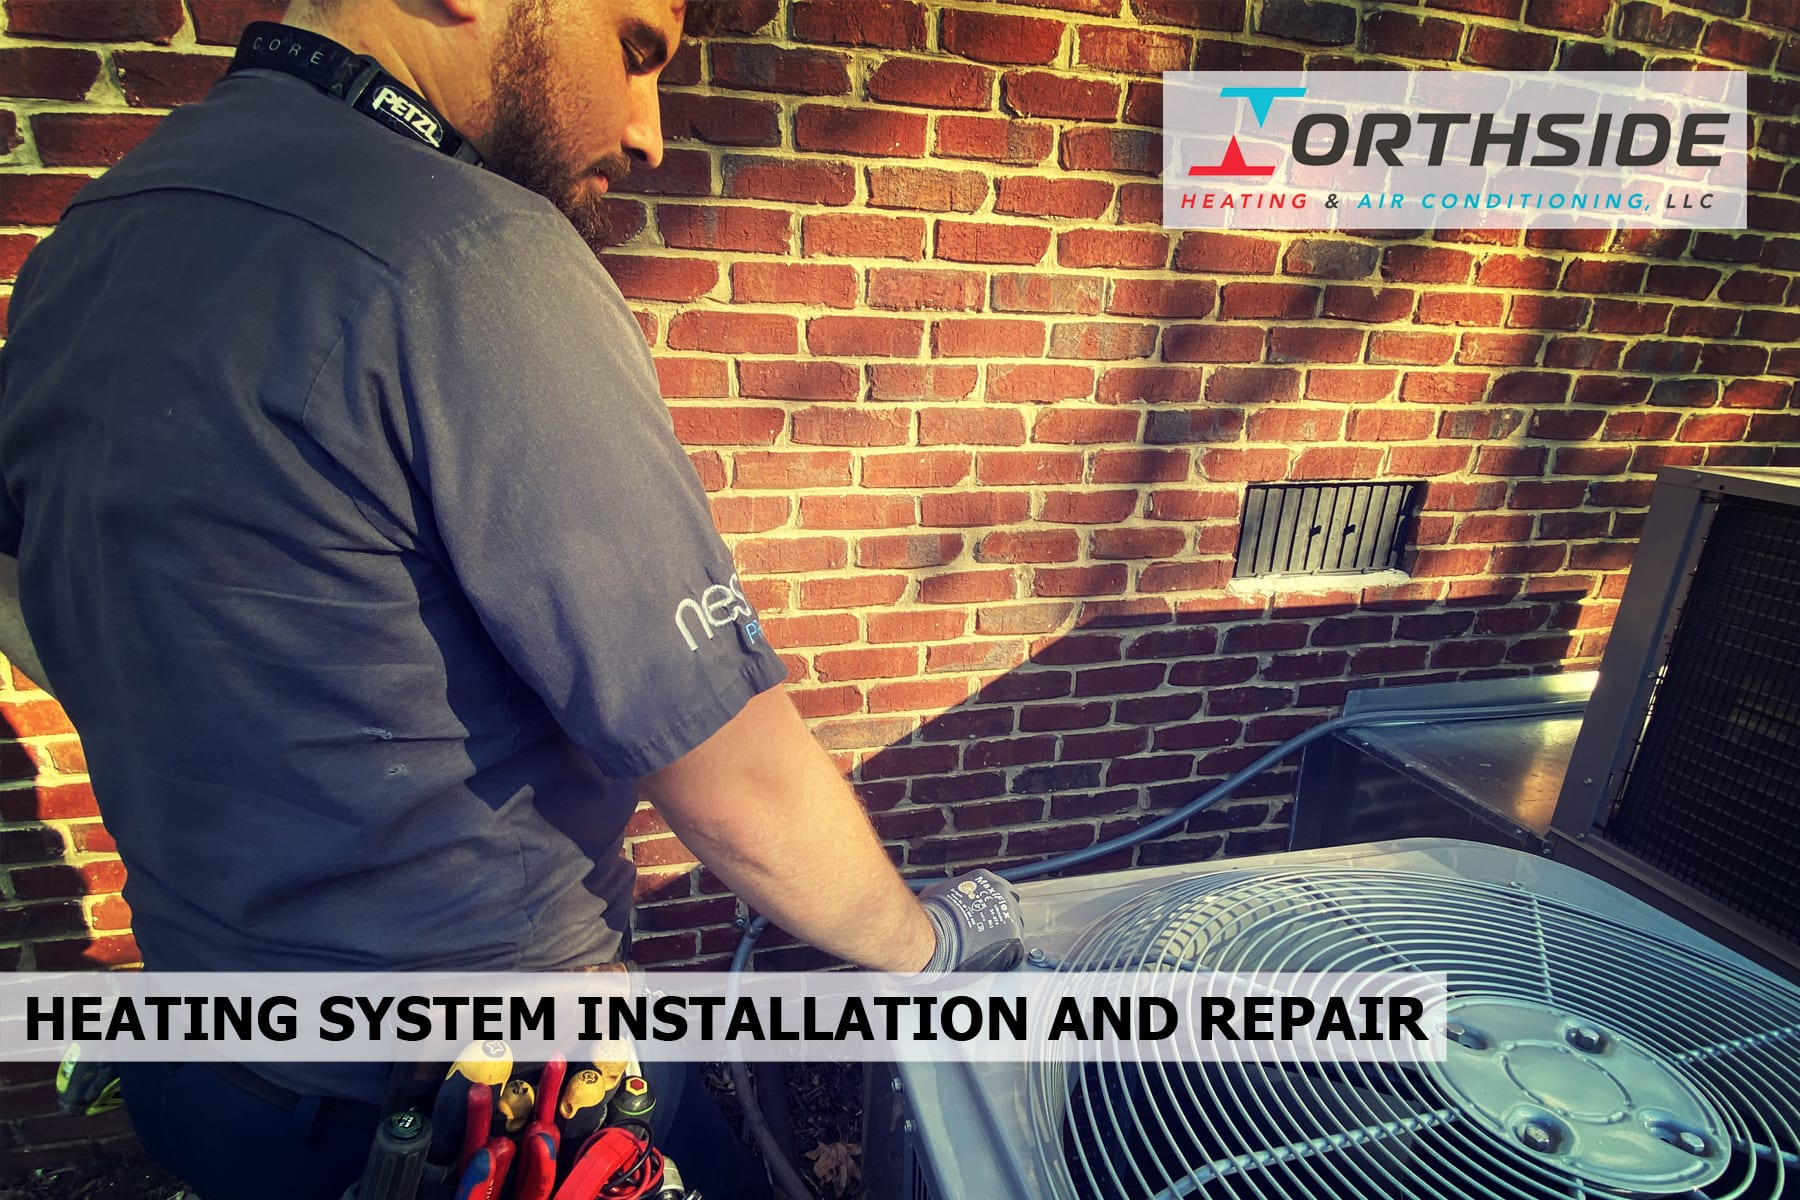 HEATING SYSTEM INSTALLATION AND REPAIR